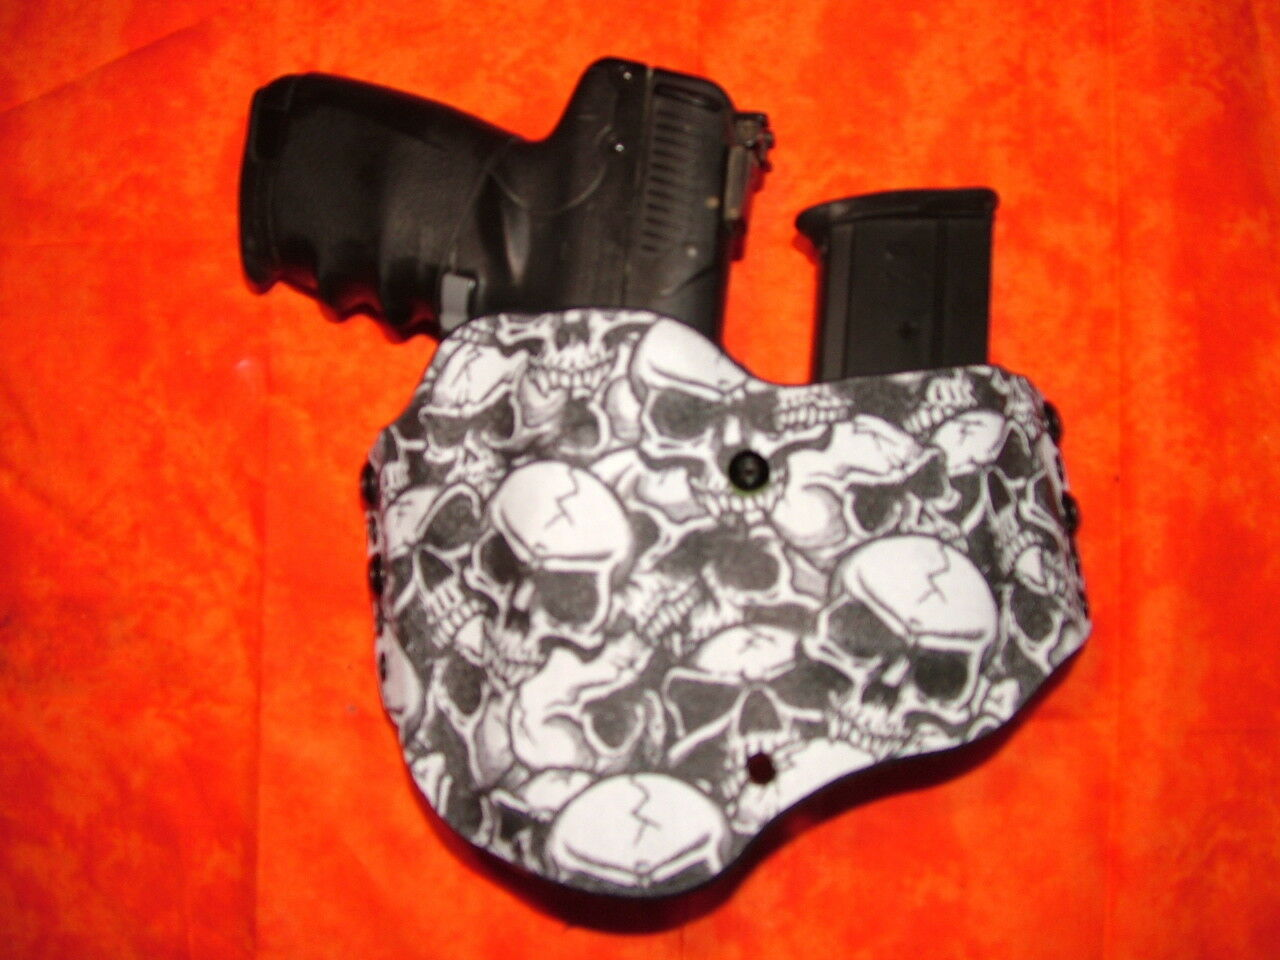 LOOK   LOOK SUPER NICE GRAVEYARD NIGHT KYDEX HOLSTER W/BUILT IN MAG TRULY HAND FITTED da49ad